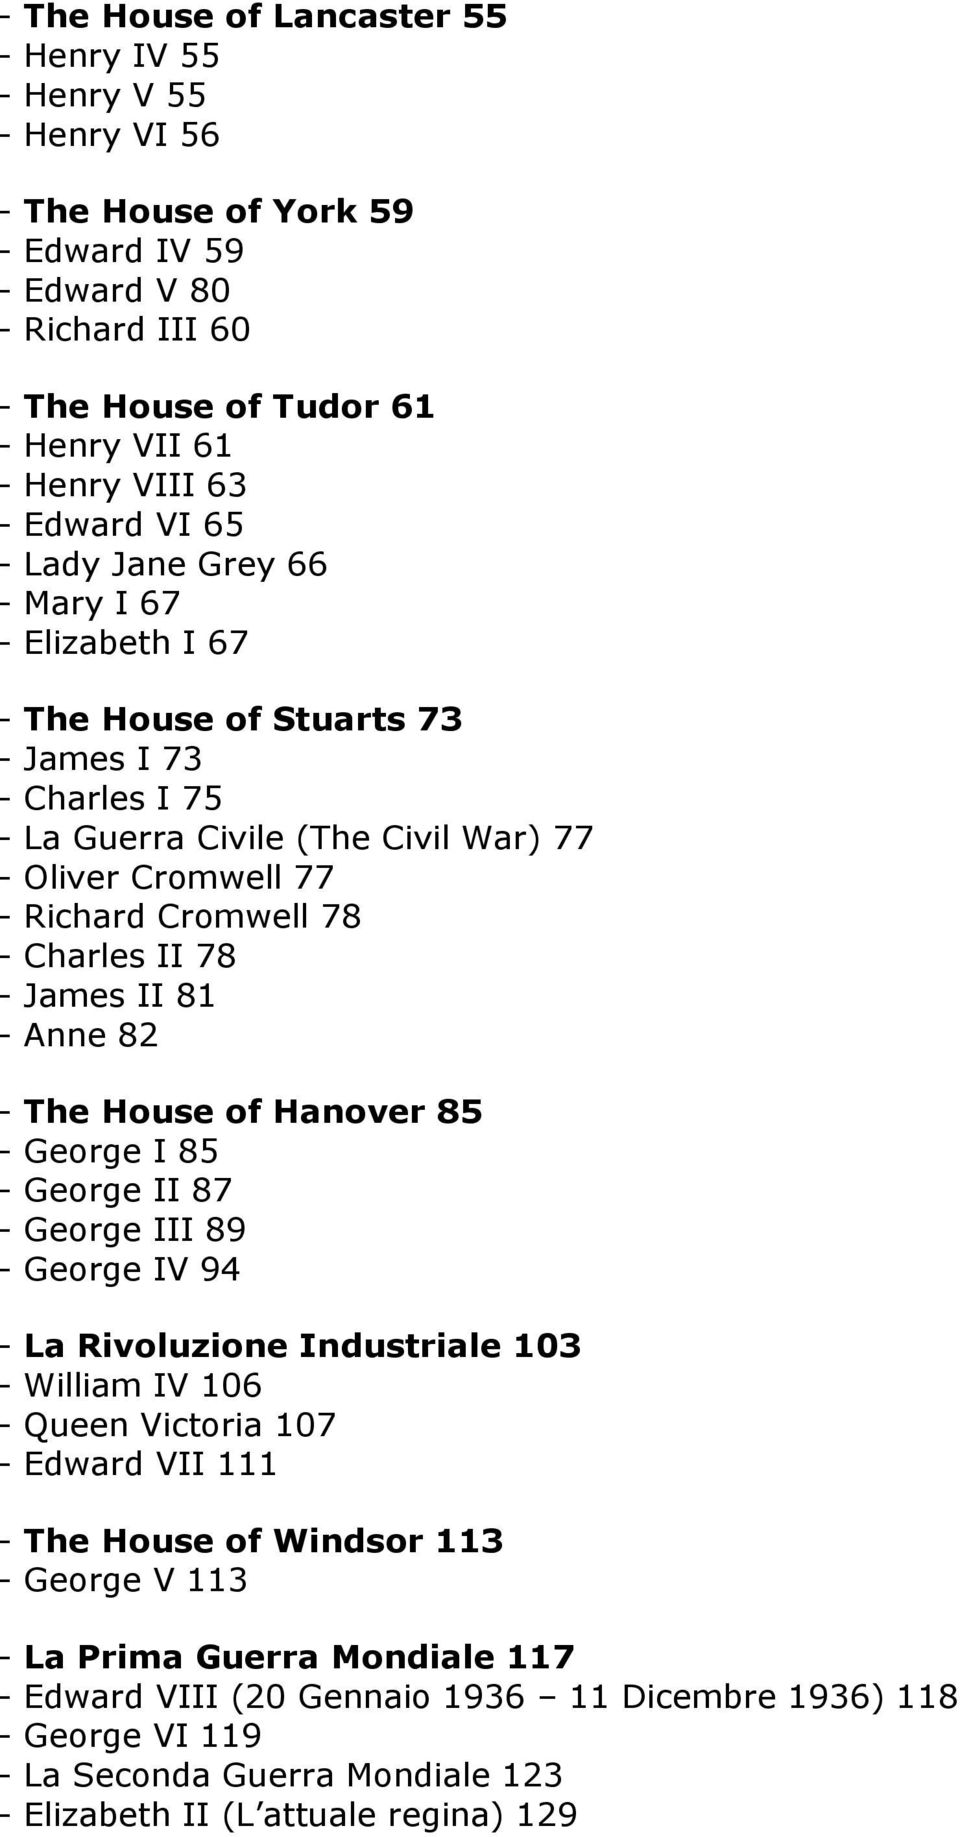 Charles II 78 - James II 81 - Anne 82 - The House of Hanover 85 - George I 85 - George II 87 - George III 89 - George IV 94 - La Rivoluzione Industriale 103 - William IV 106 - Queen Victoria 107 -